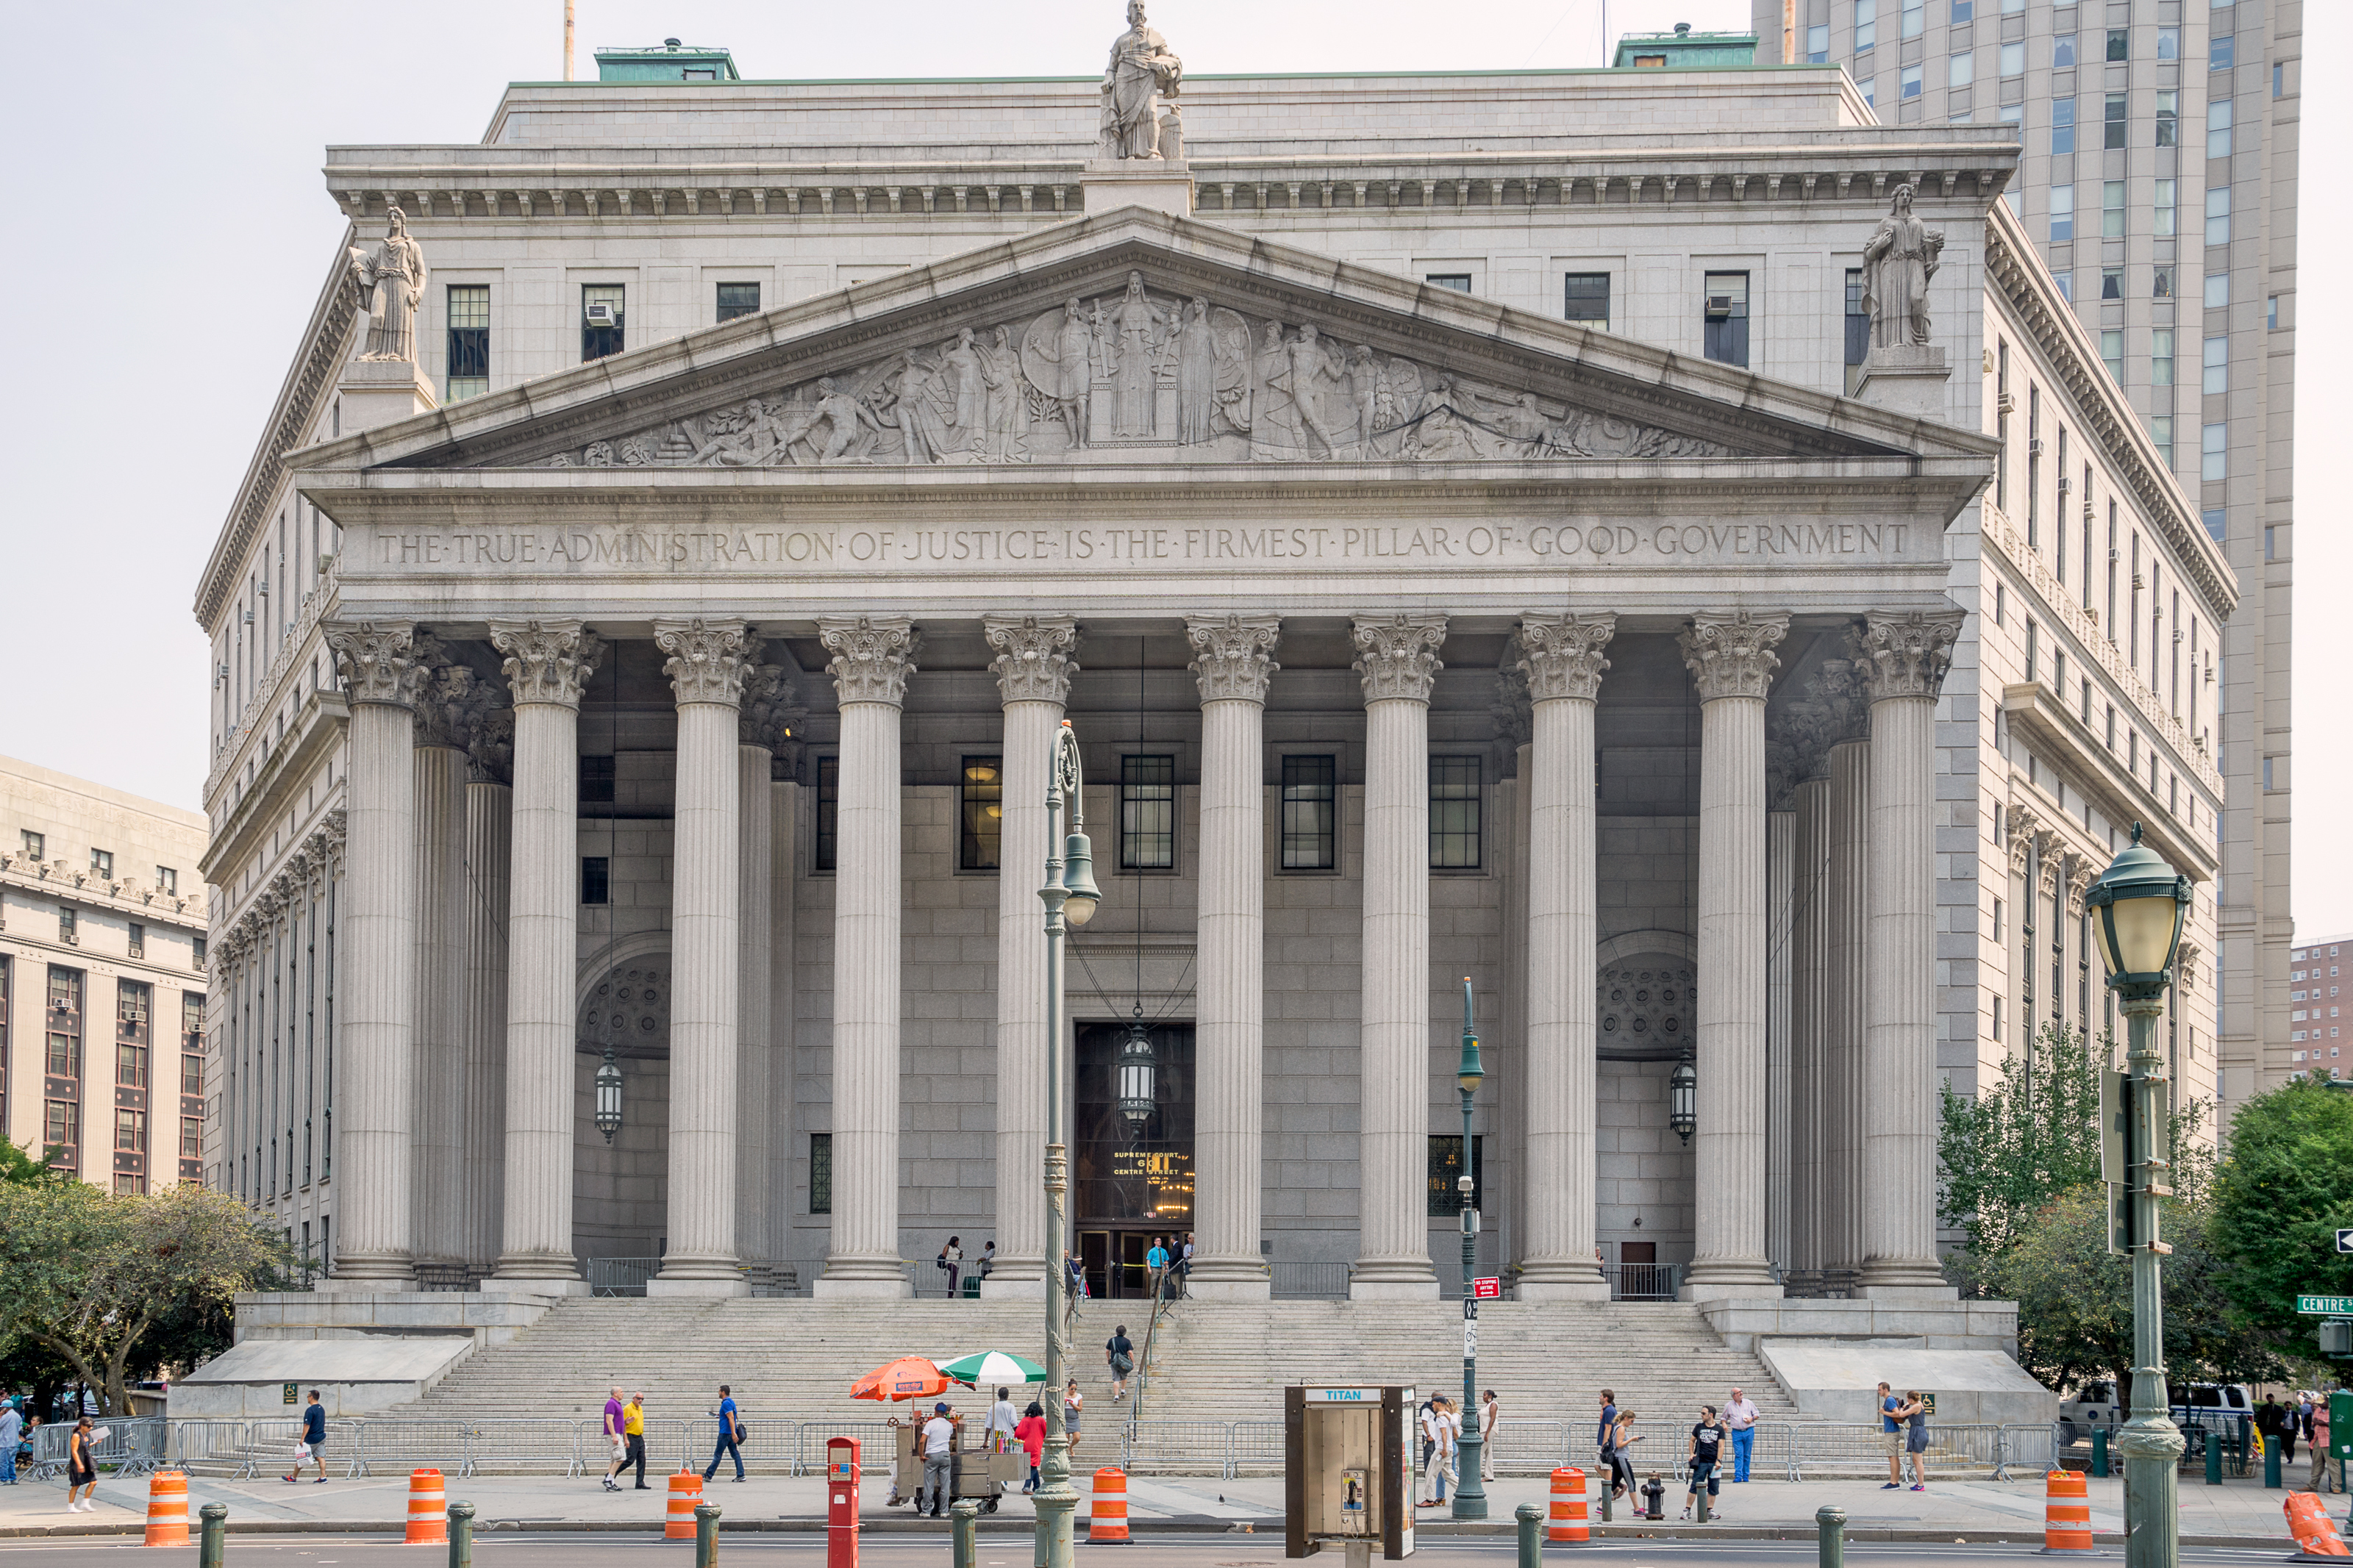 Gordon Bell, Shutterstock. New York, USA. The Appellate Divisions of the Supreme Court of the State of New York are the intermediate appellate courts in New York State